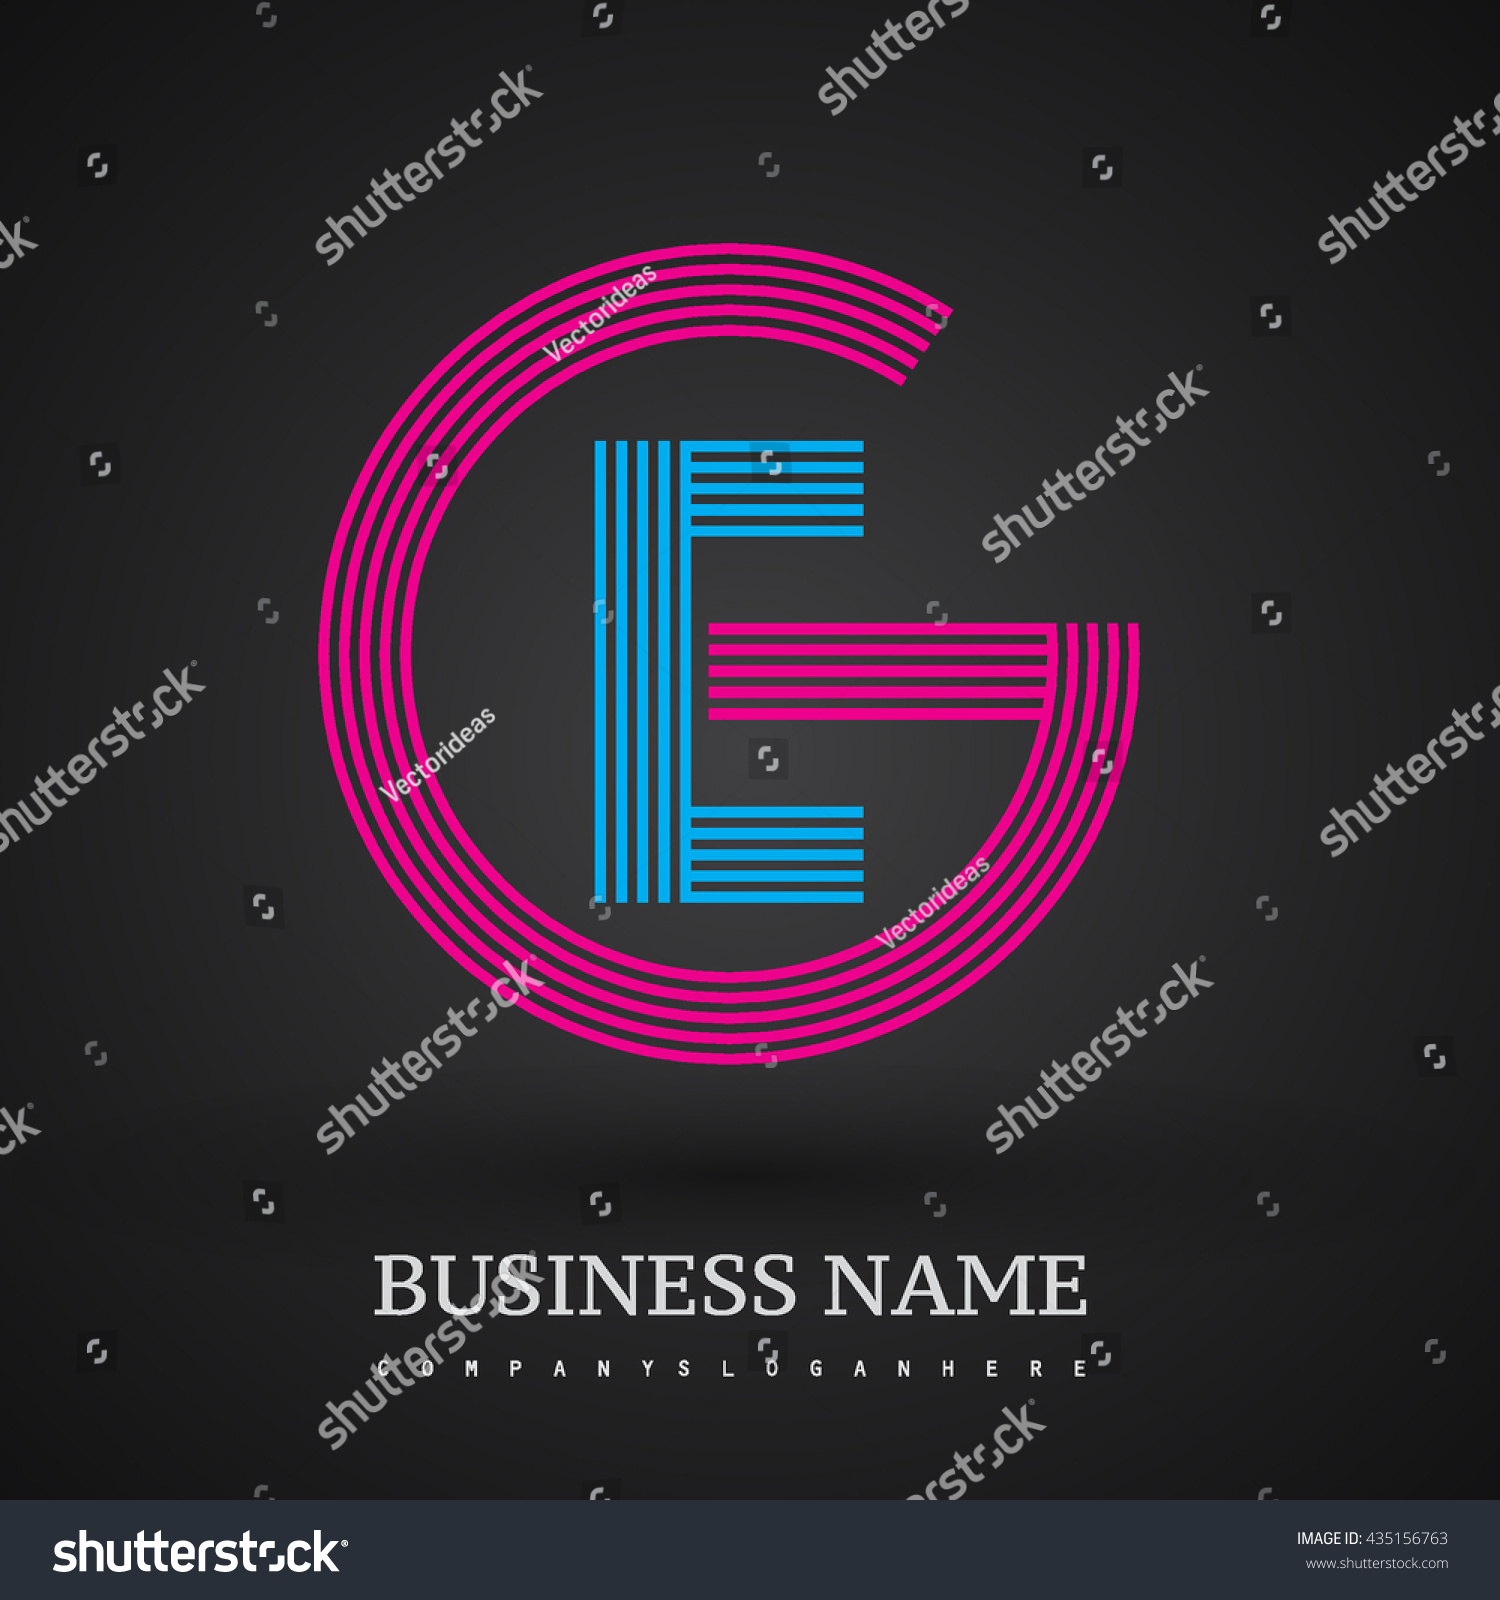 Letter ge linked logo design circle stock vector 435156763 letter eg or ge linked logo design circle g shape elegant red and blue colored biocorpaavc Gallery